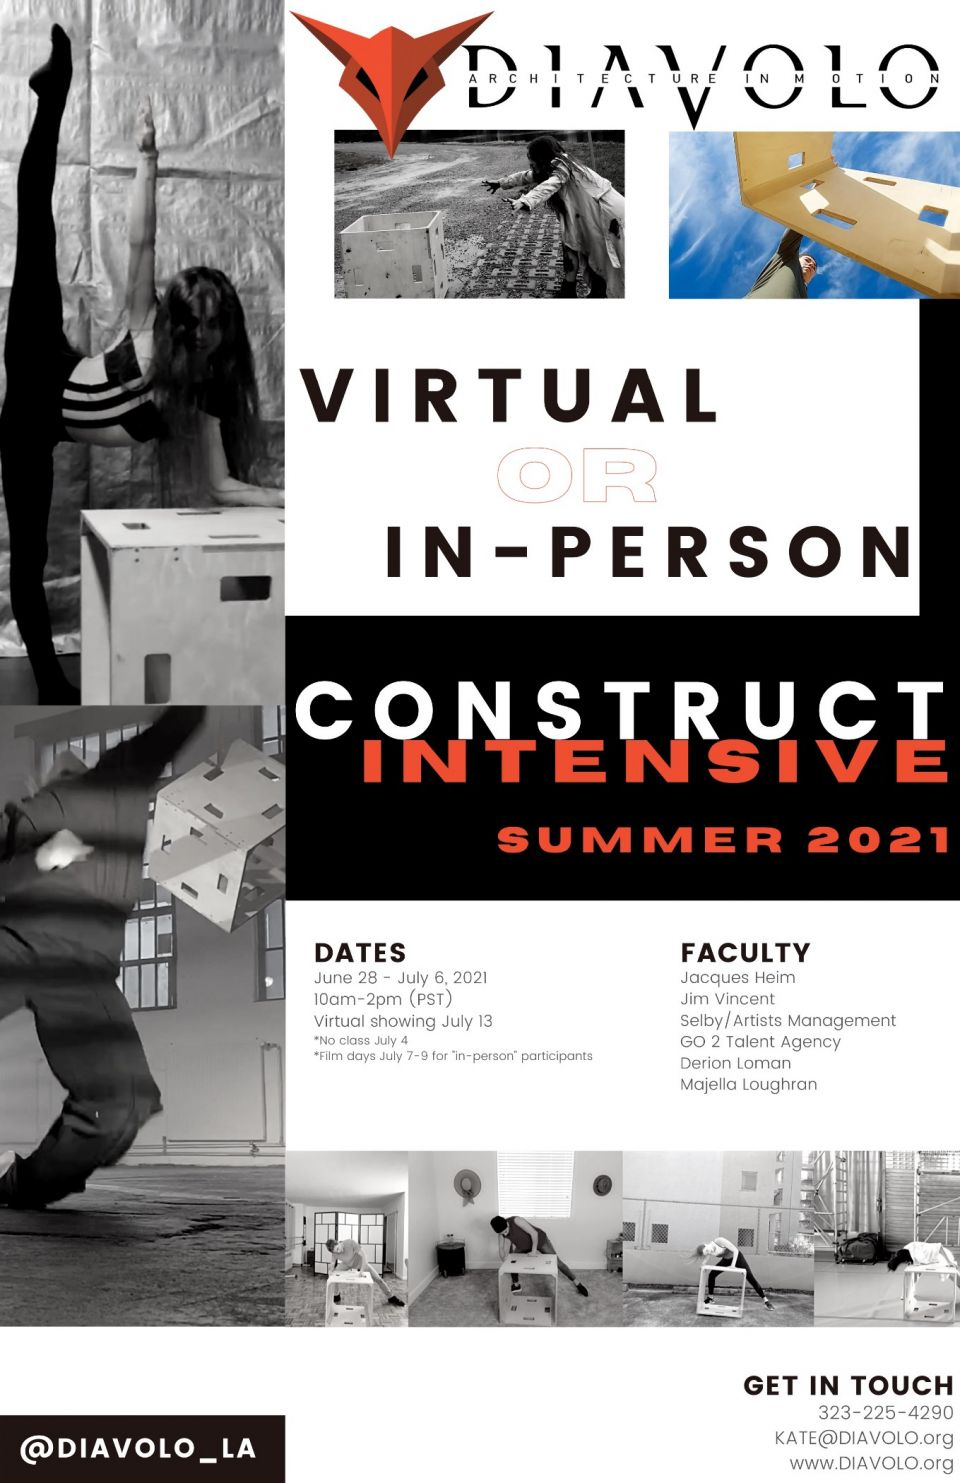 DIAVOLO'SCONSTRUCT SUMMER INTENSIVEVirtual and In=Person spots available! Virtual participants will receive a kit to build your very own DIAVOLO cubicle! In-Person participants will conclude the intensive with a professional one on one session with two time Emmy-winning cinematographer, Aaron Mendez! June 28-July 6 10am-2pm PSTcheck out www.diavolo.org for more info!